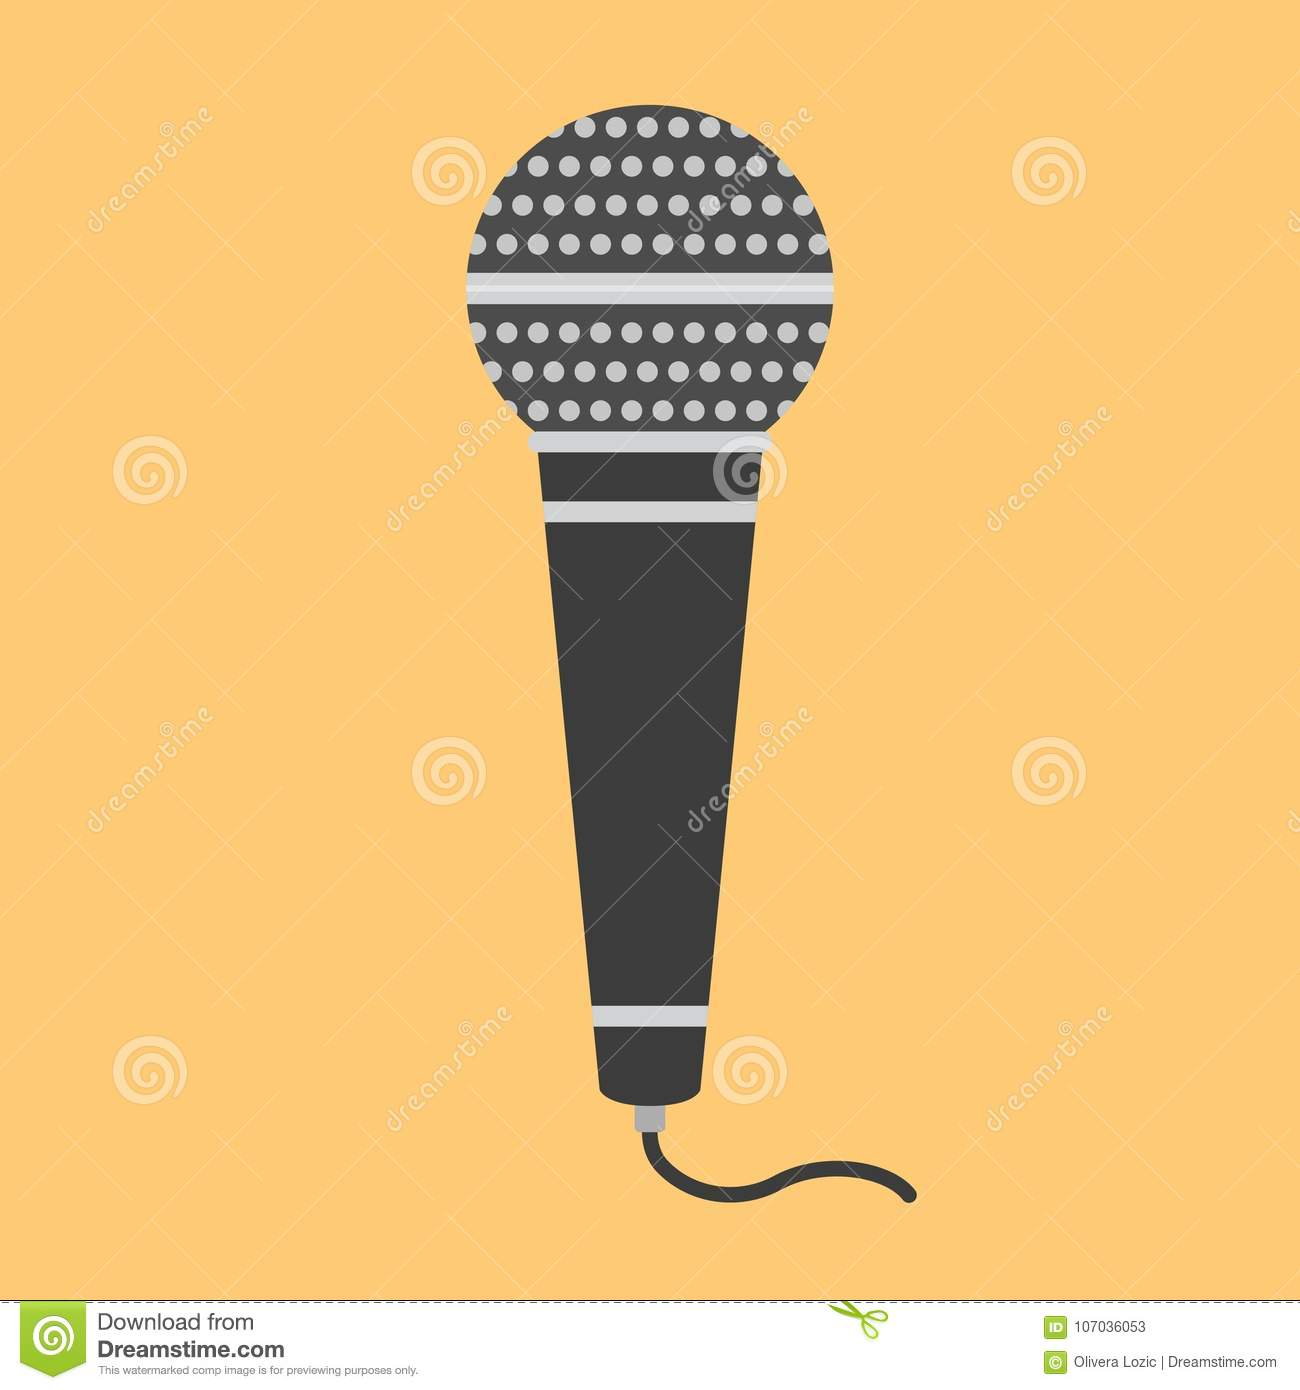 Flat icon microphone